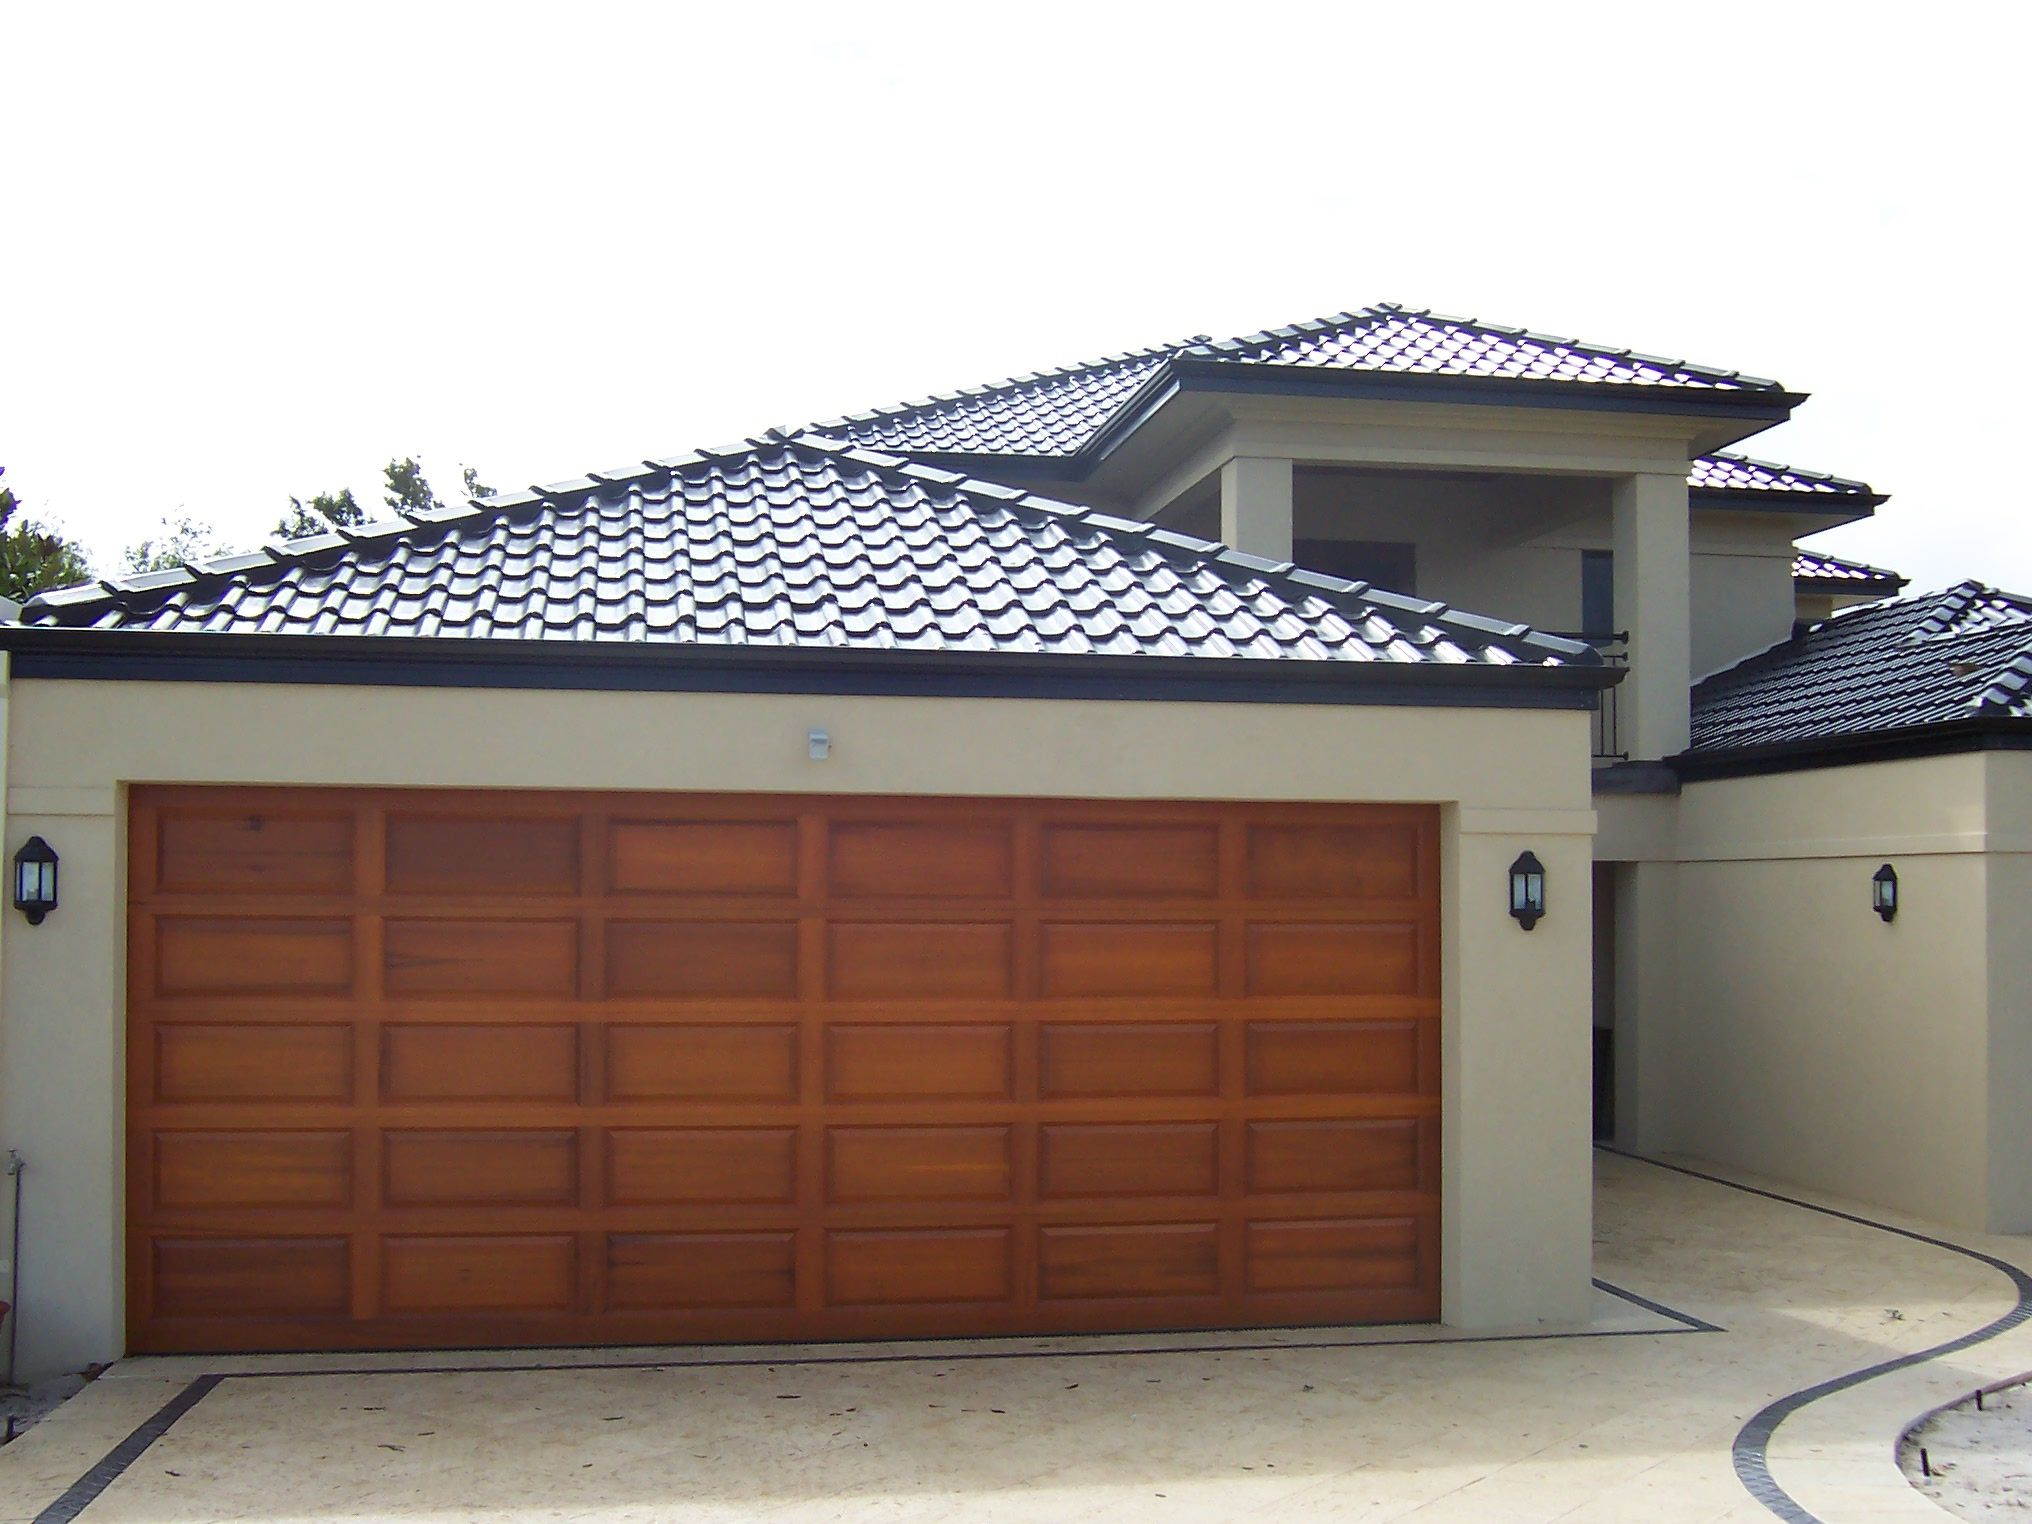 Garage Doors For Modern Homes On With Hd Resolution 3264x2448